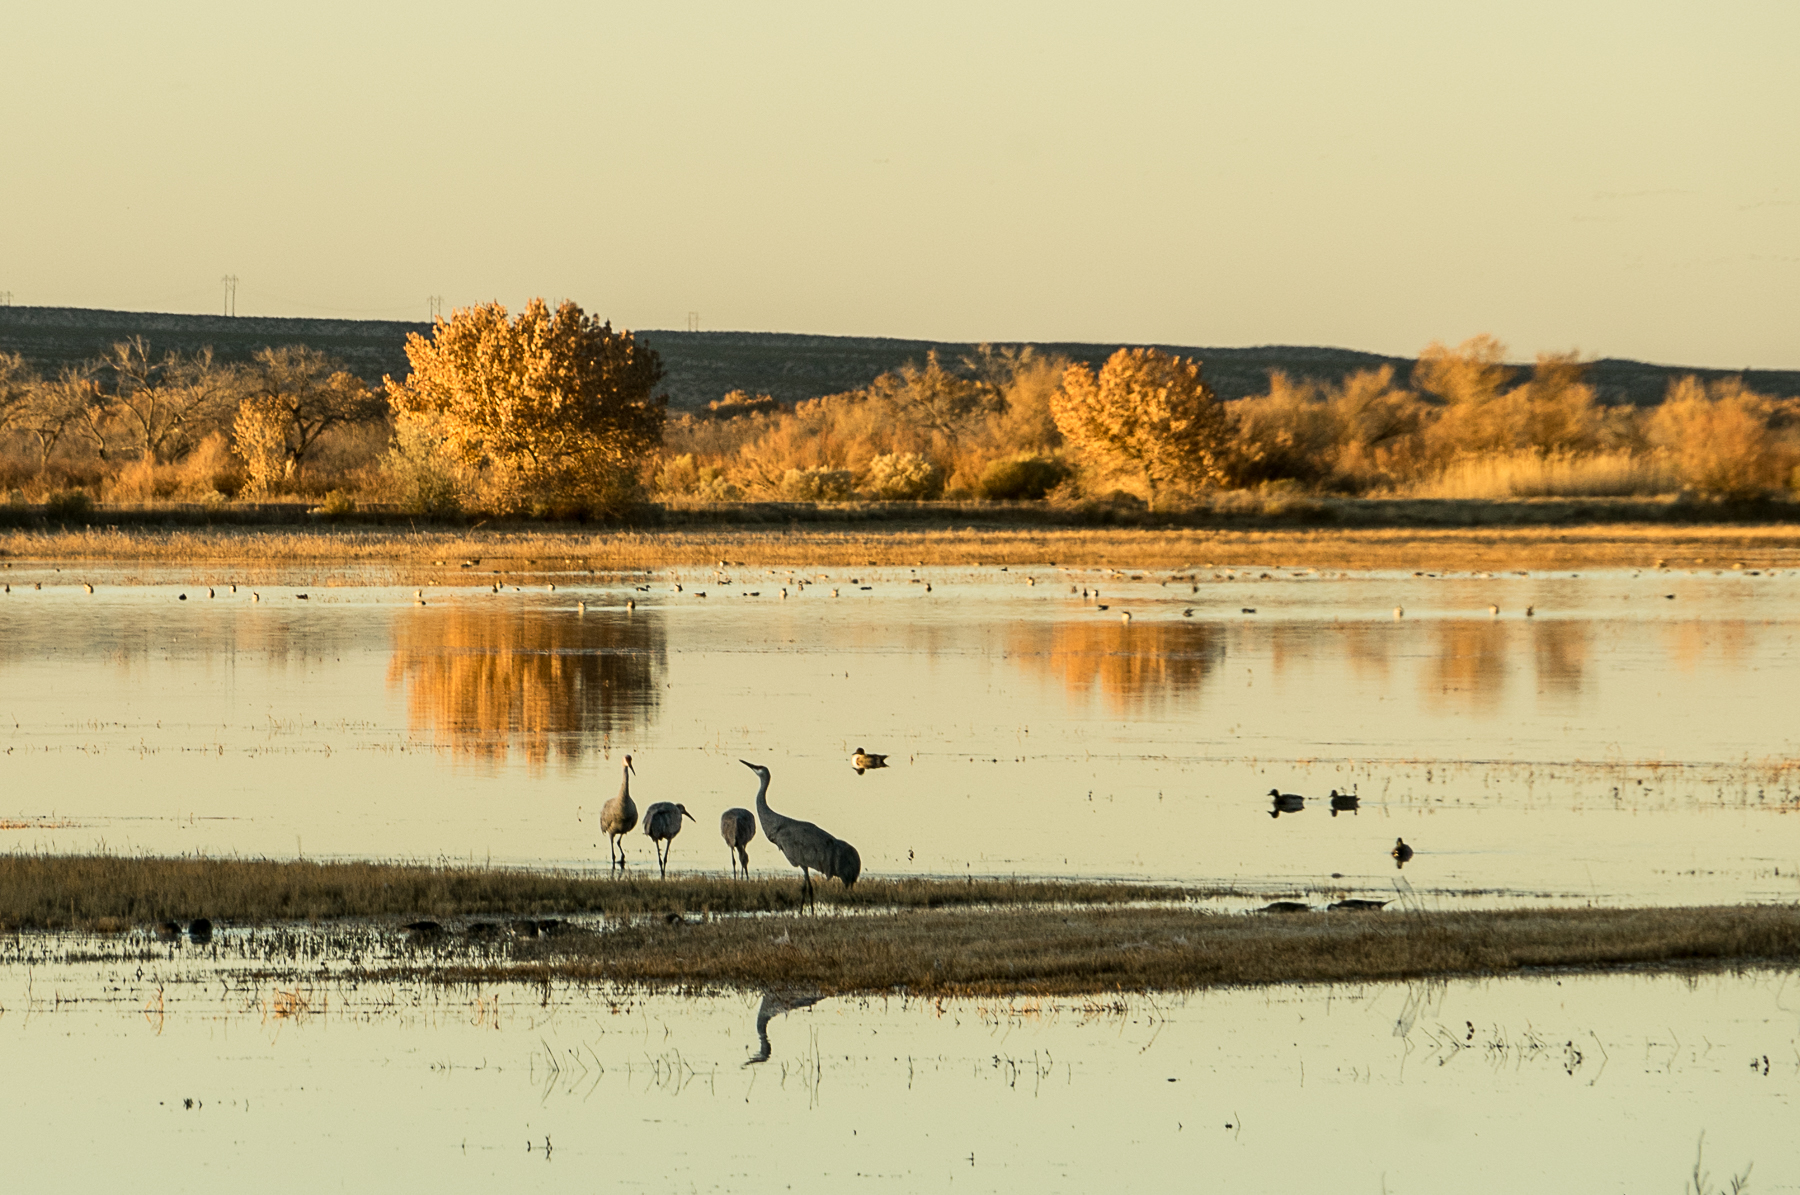 Bosque del Apache, Sandhill Crane, Cranes, Sandhills, Bosque del Apache NWR, Bosque del Apache National Wildlife Refuge, National Wildlife Refuge, NWR, New Mexico, desert, agave, yucca, National Monument